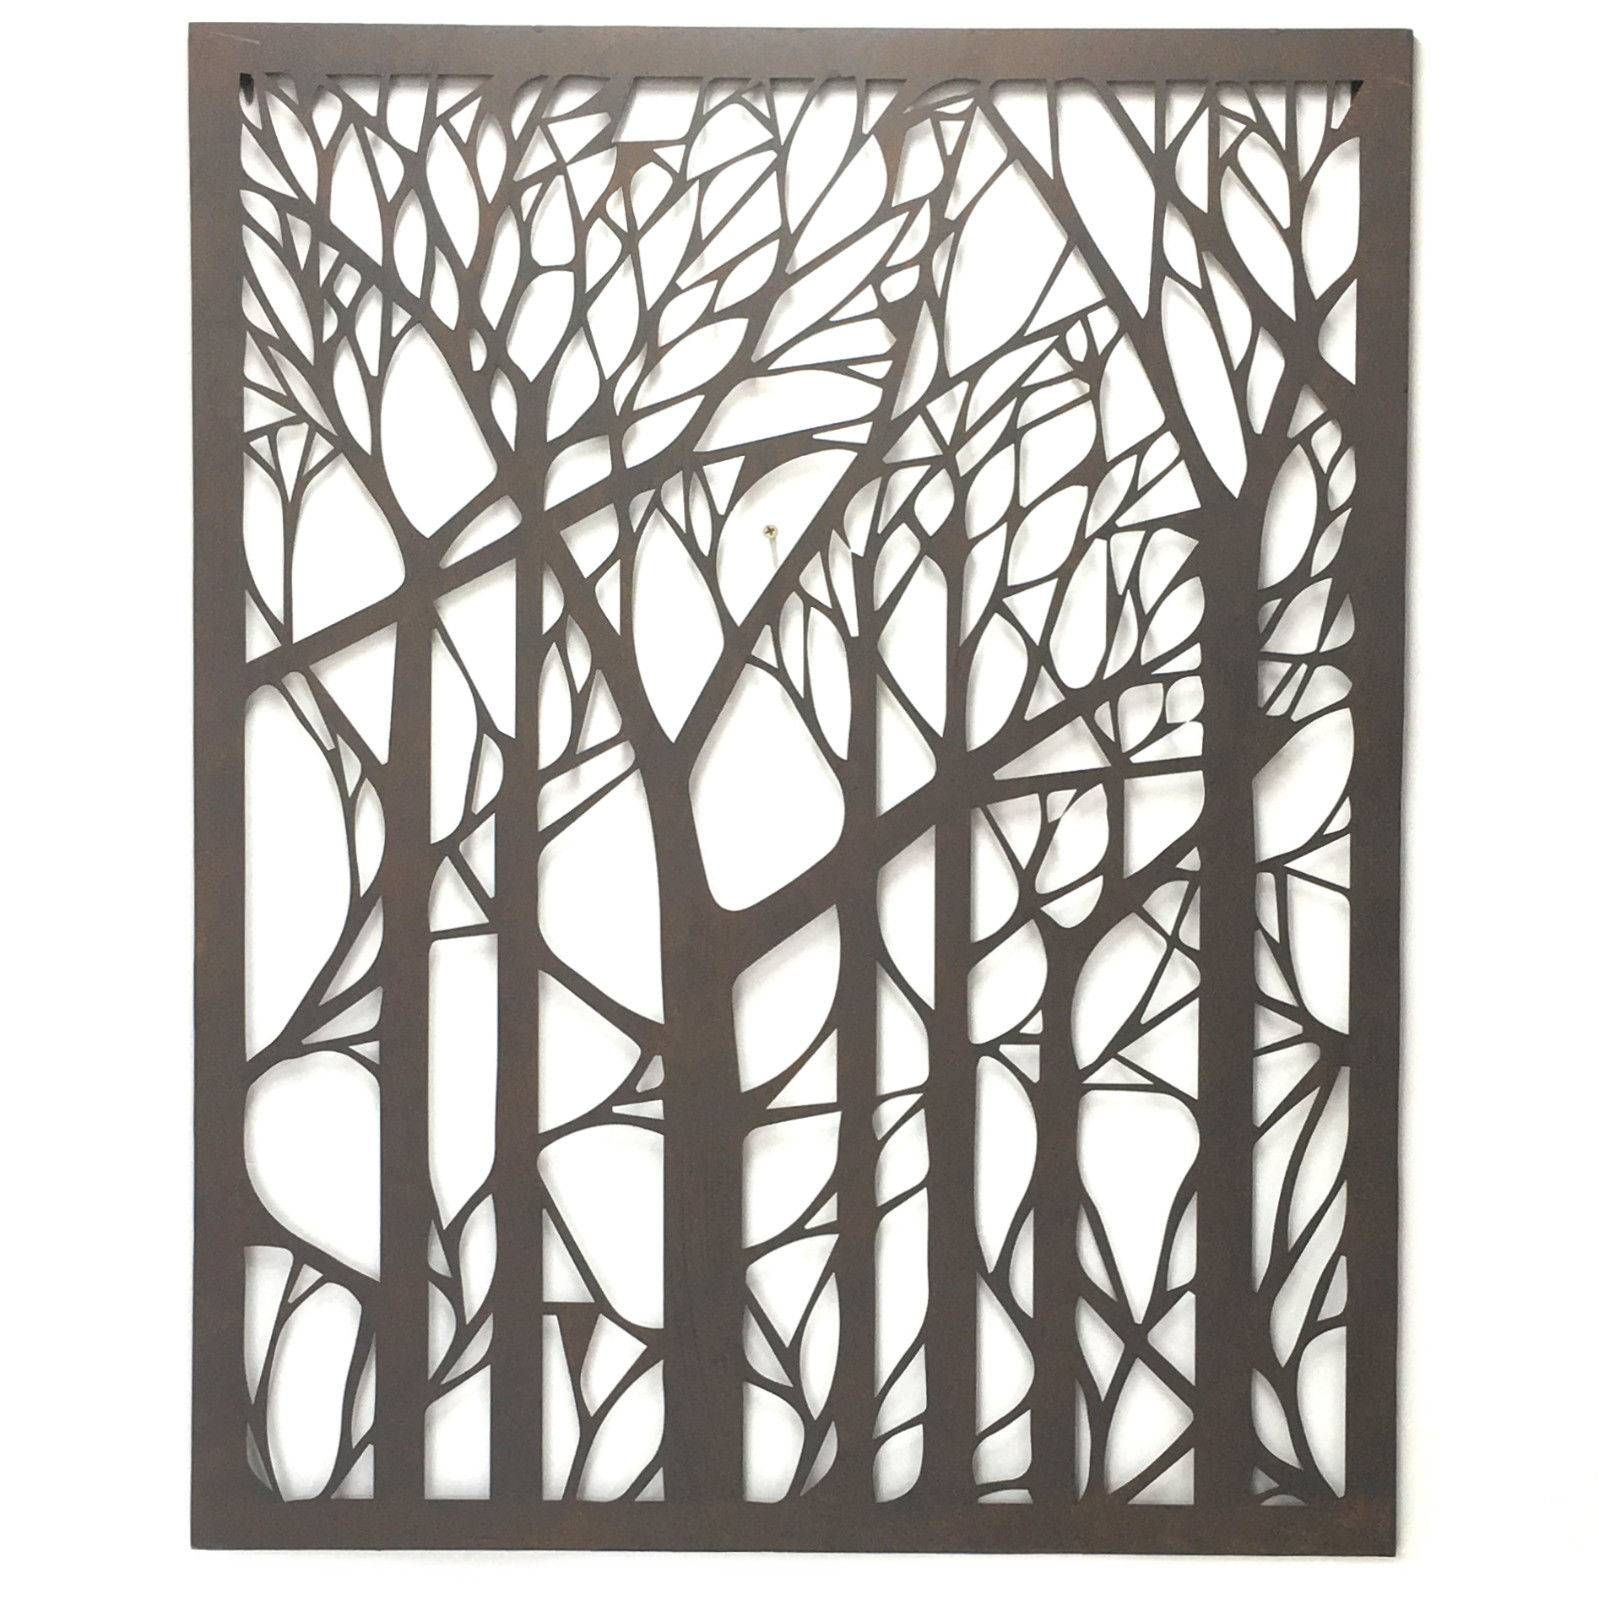 Wall Art Designs: Outdoor Wall Art Metal Tree Metal Wall Art With Regard To Current Outdoor Wall Sculpture Art (View 6 of 20)